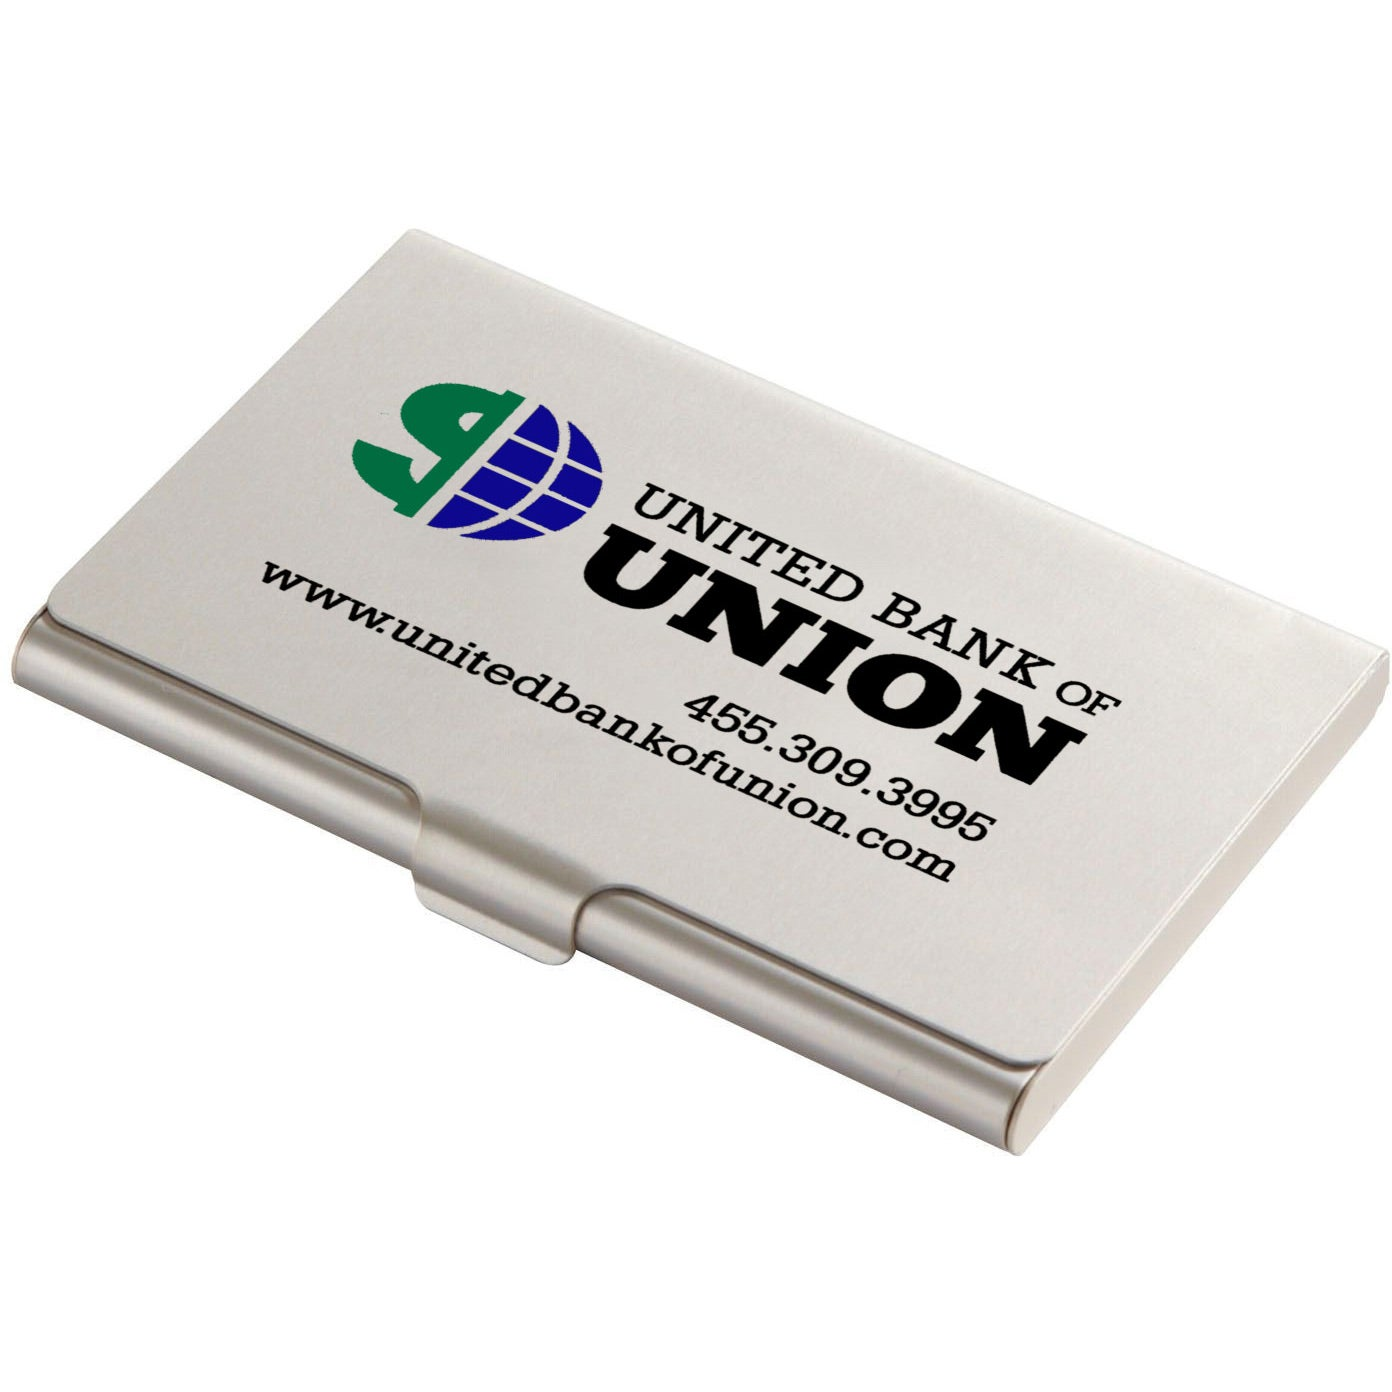 Promotional Slim Card Holders with Custom Logo for $1.95 Ea.